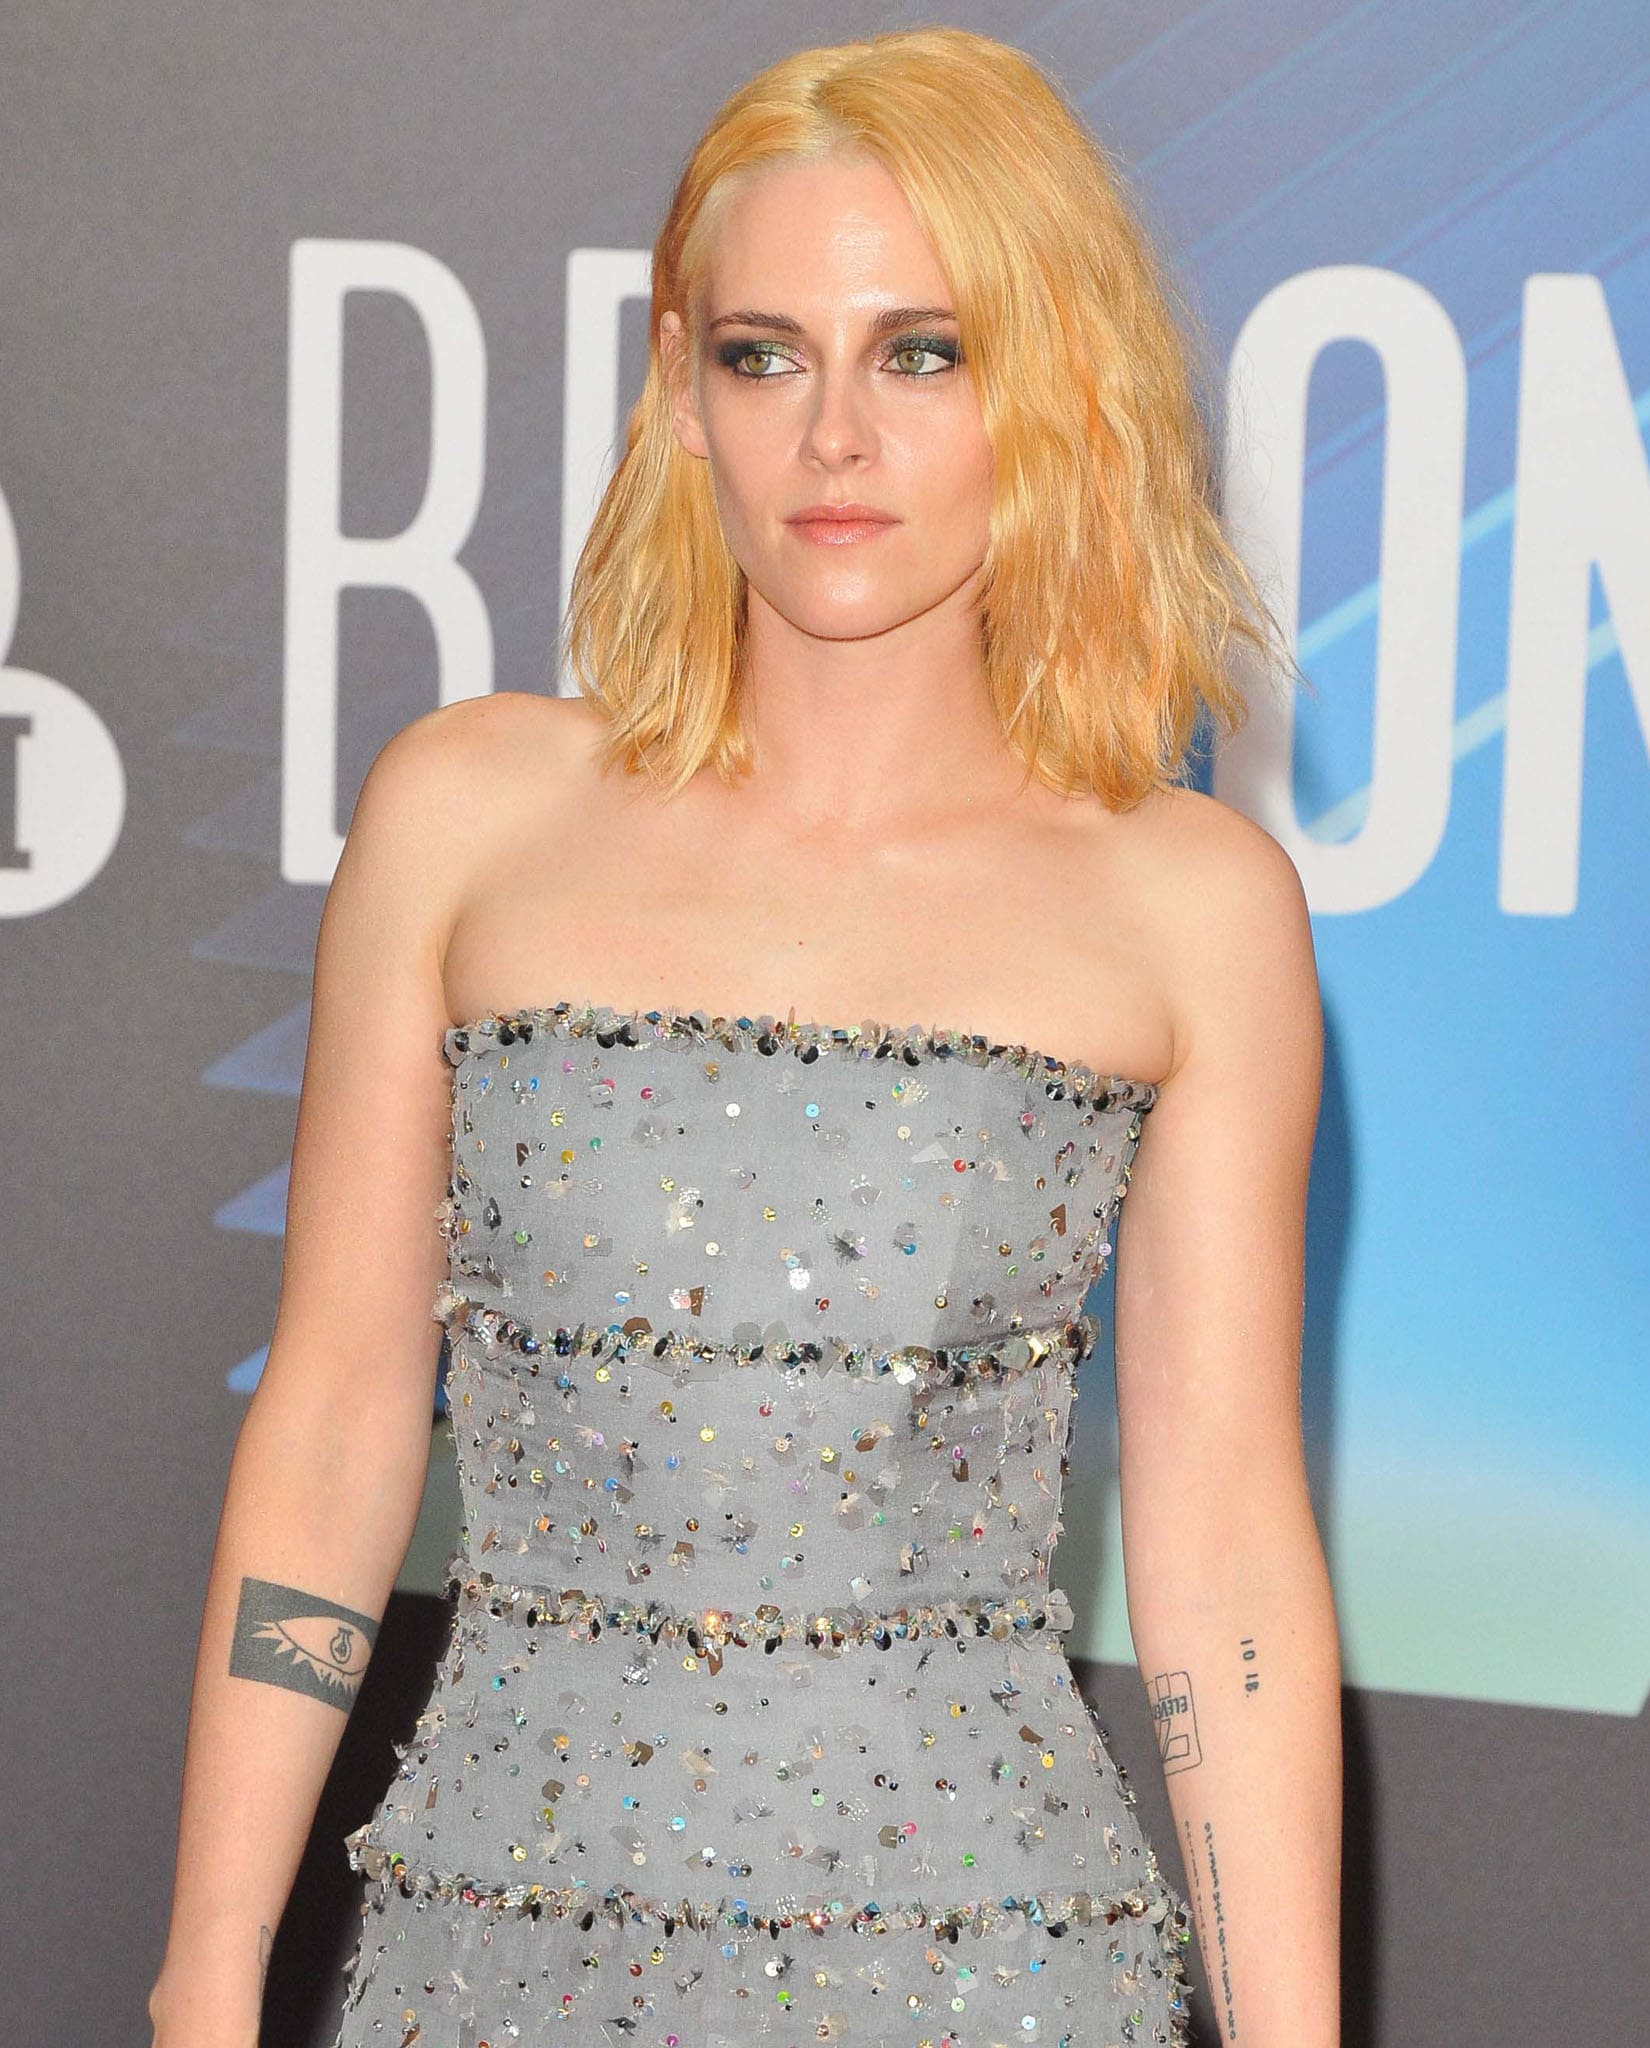 Kristen Stewart continues the glamour with beach waves lob hairstyle and smokey eye-makeup